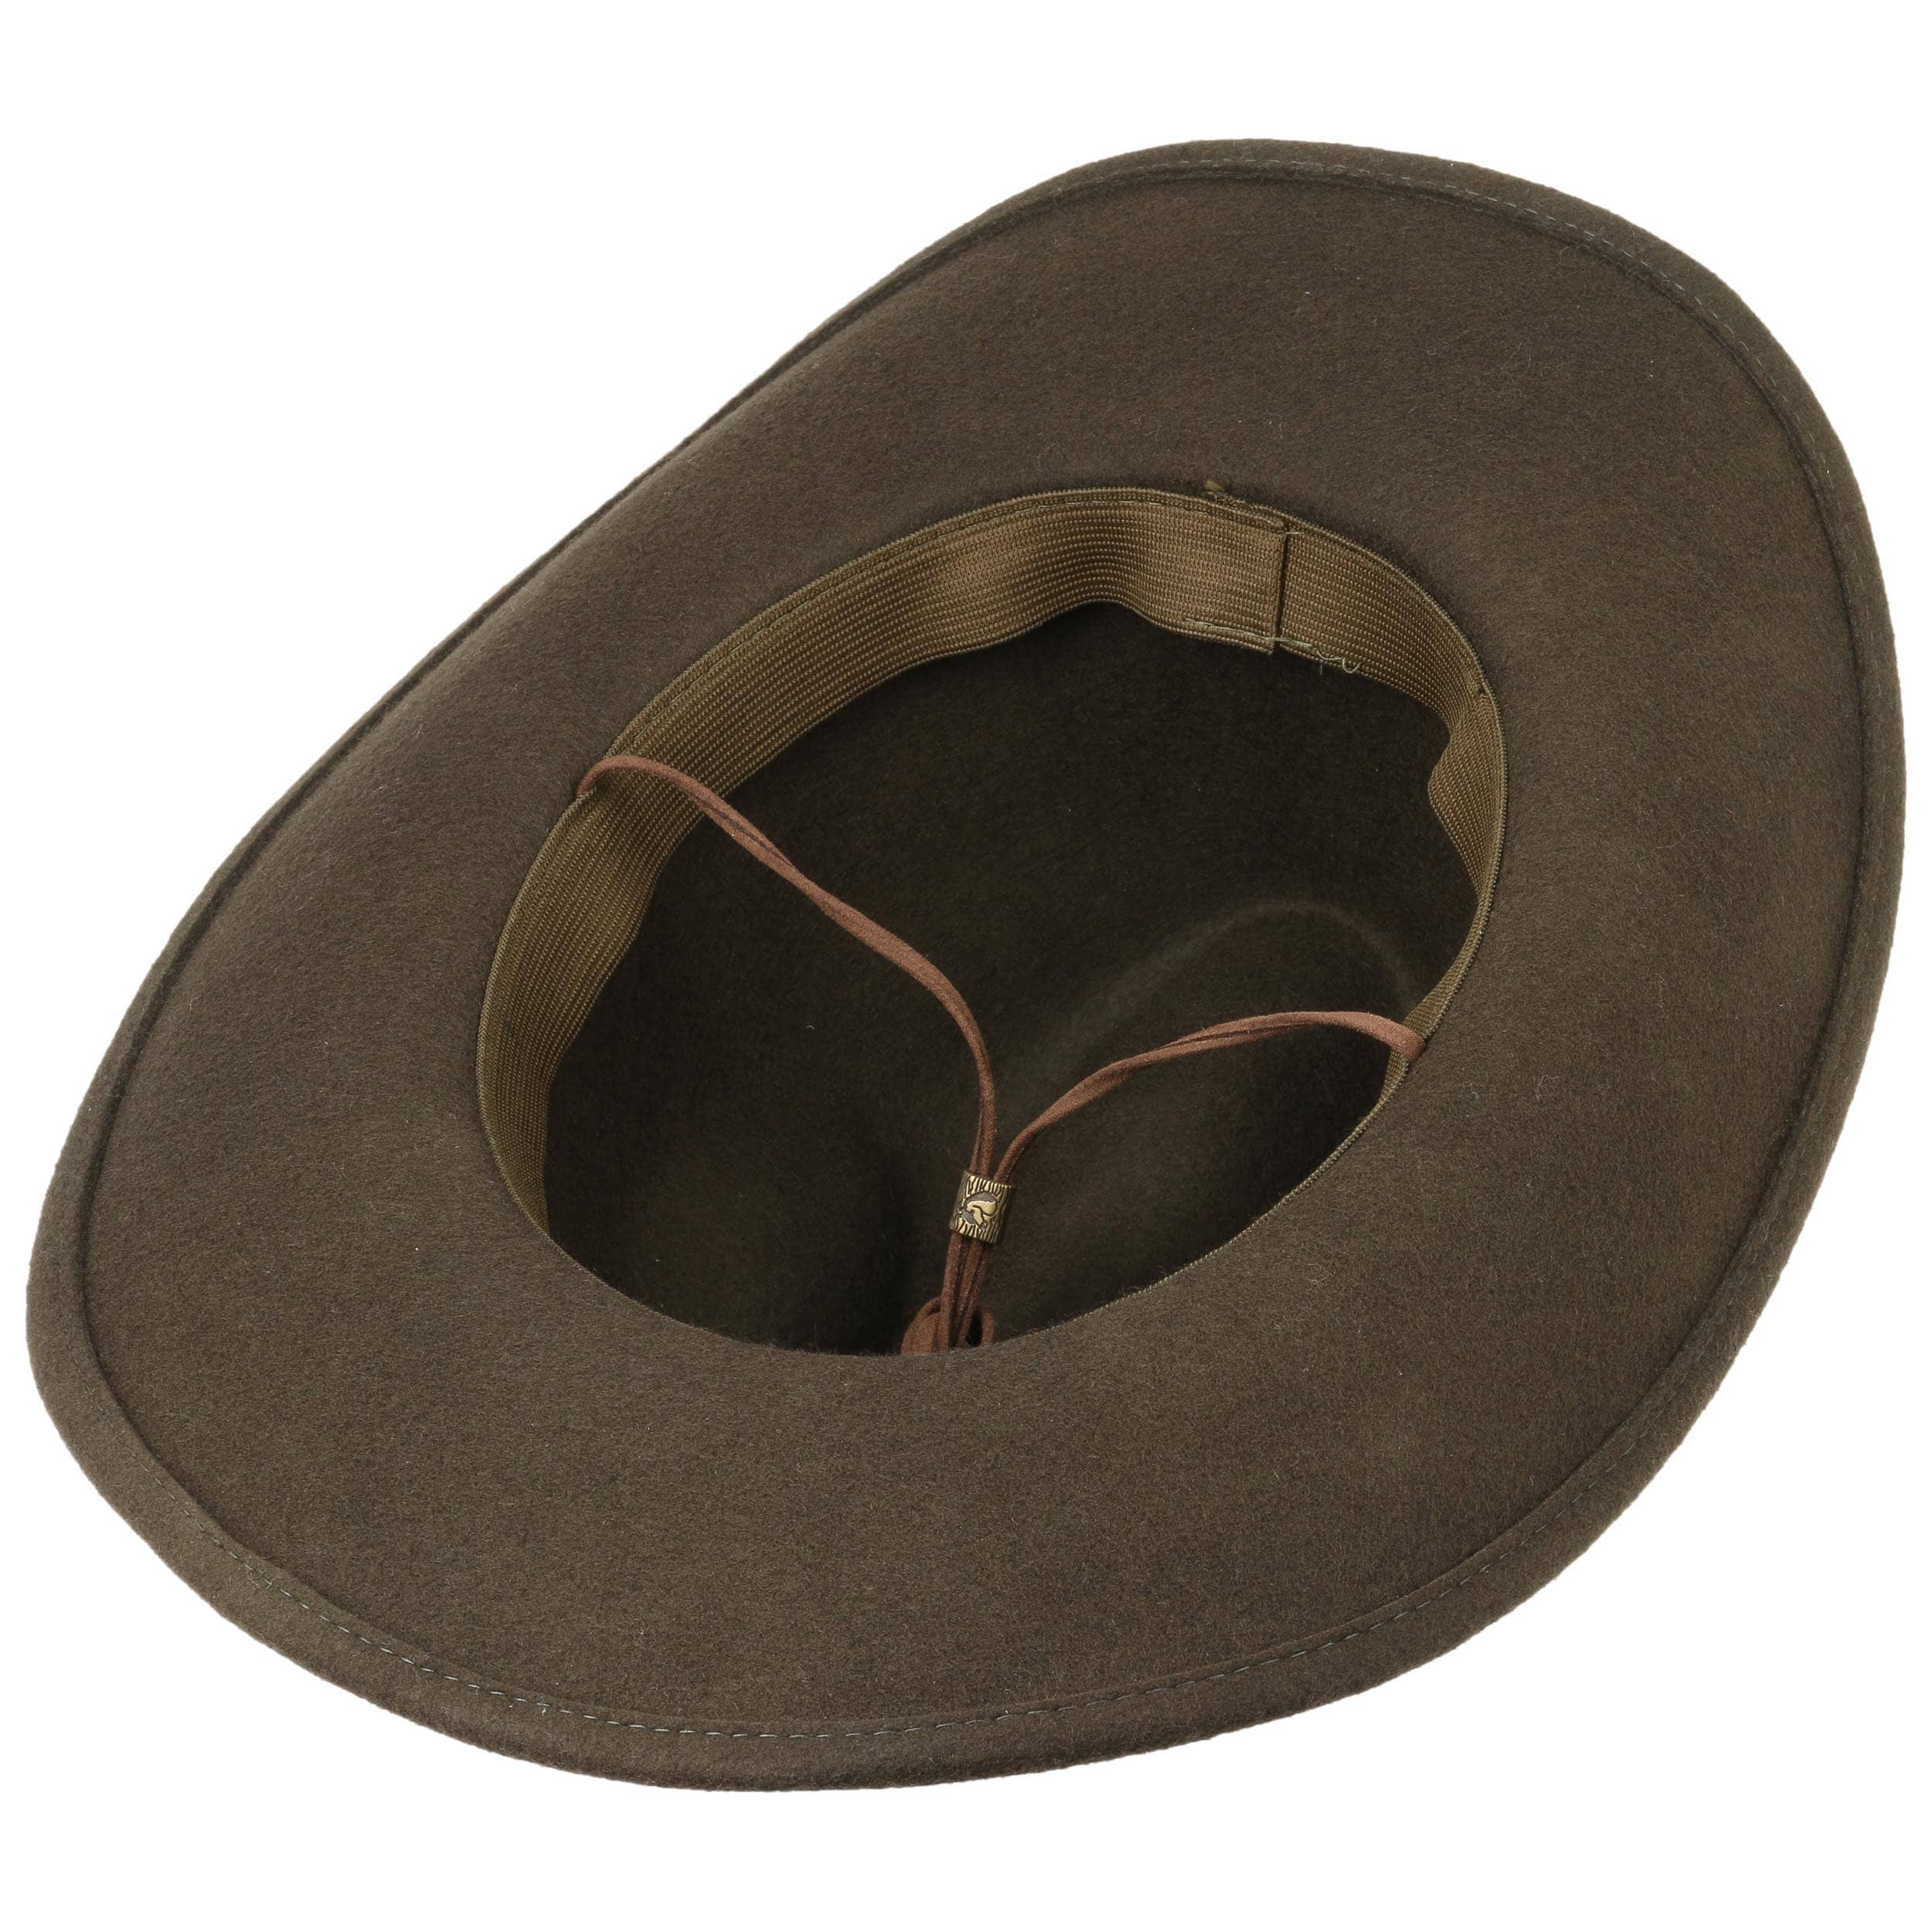 ... Cowboy Hat with Chin Strap by Lipodo - olive 2 ... a1c9a8224ea